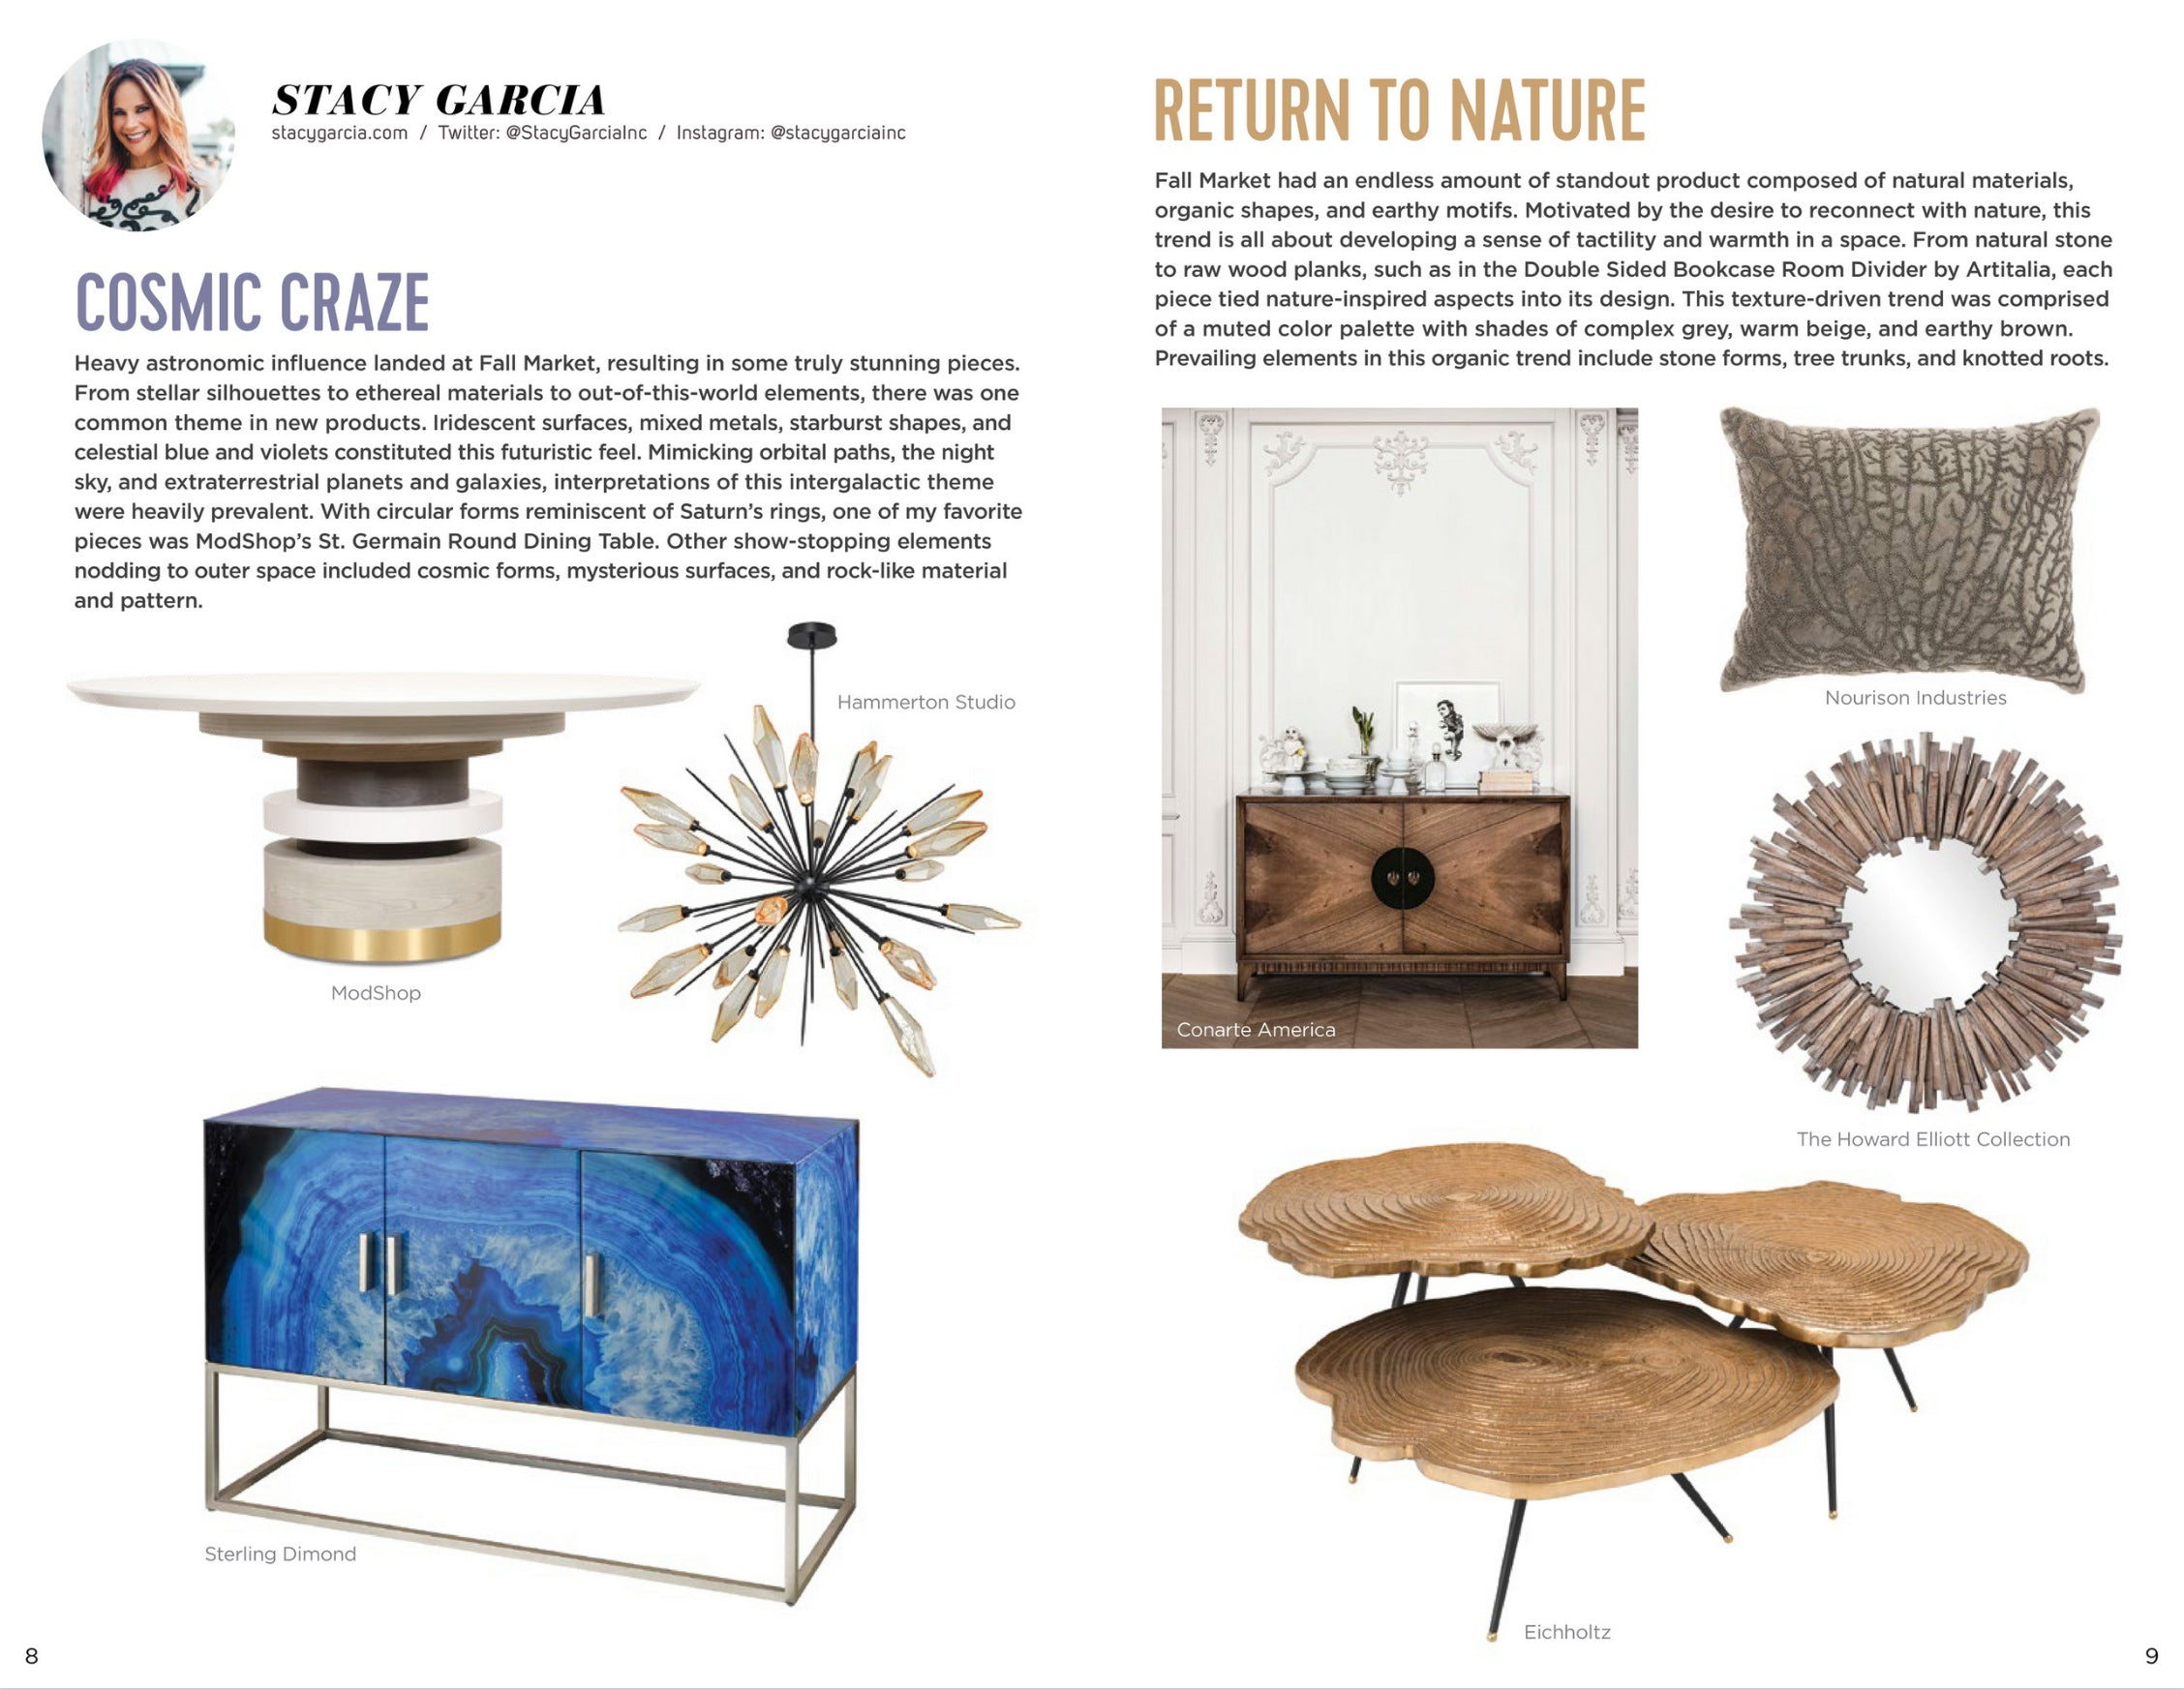 high point market style report featuring stacy garcia pick of modshop's st. germaine dining table